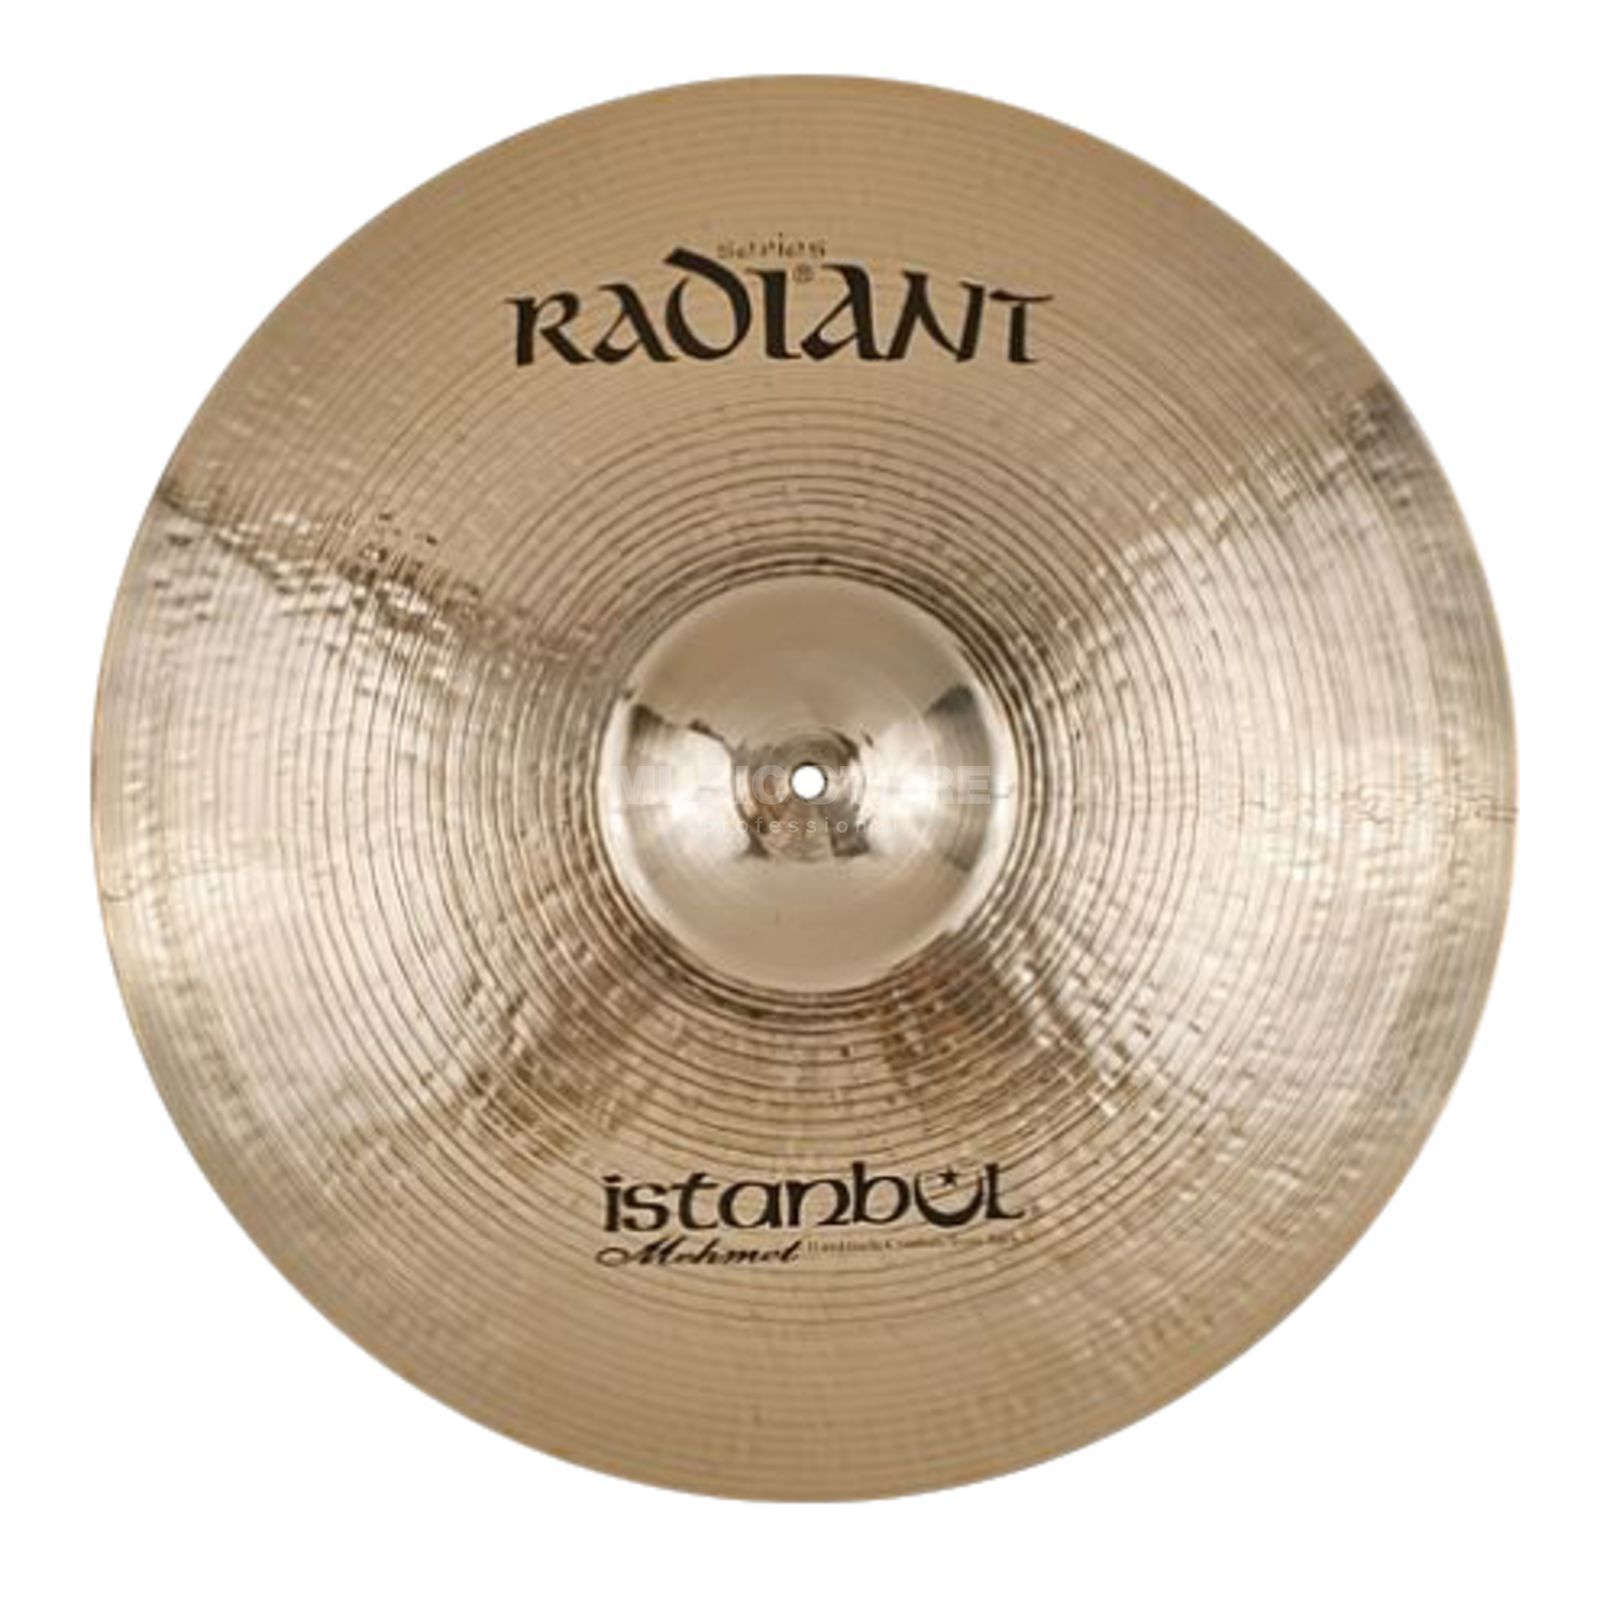 "Istanbul Radiant Medium Ride 21"", R-RM22 Product Image"